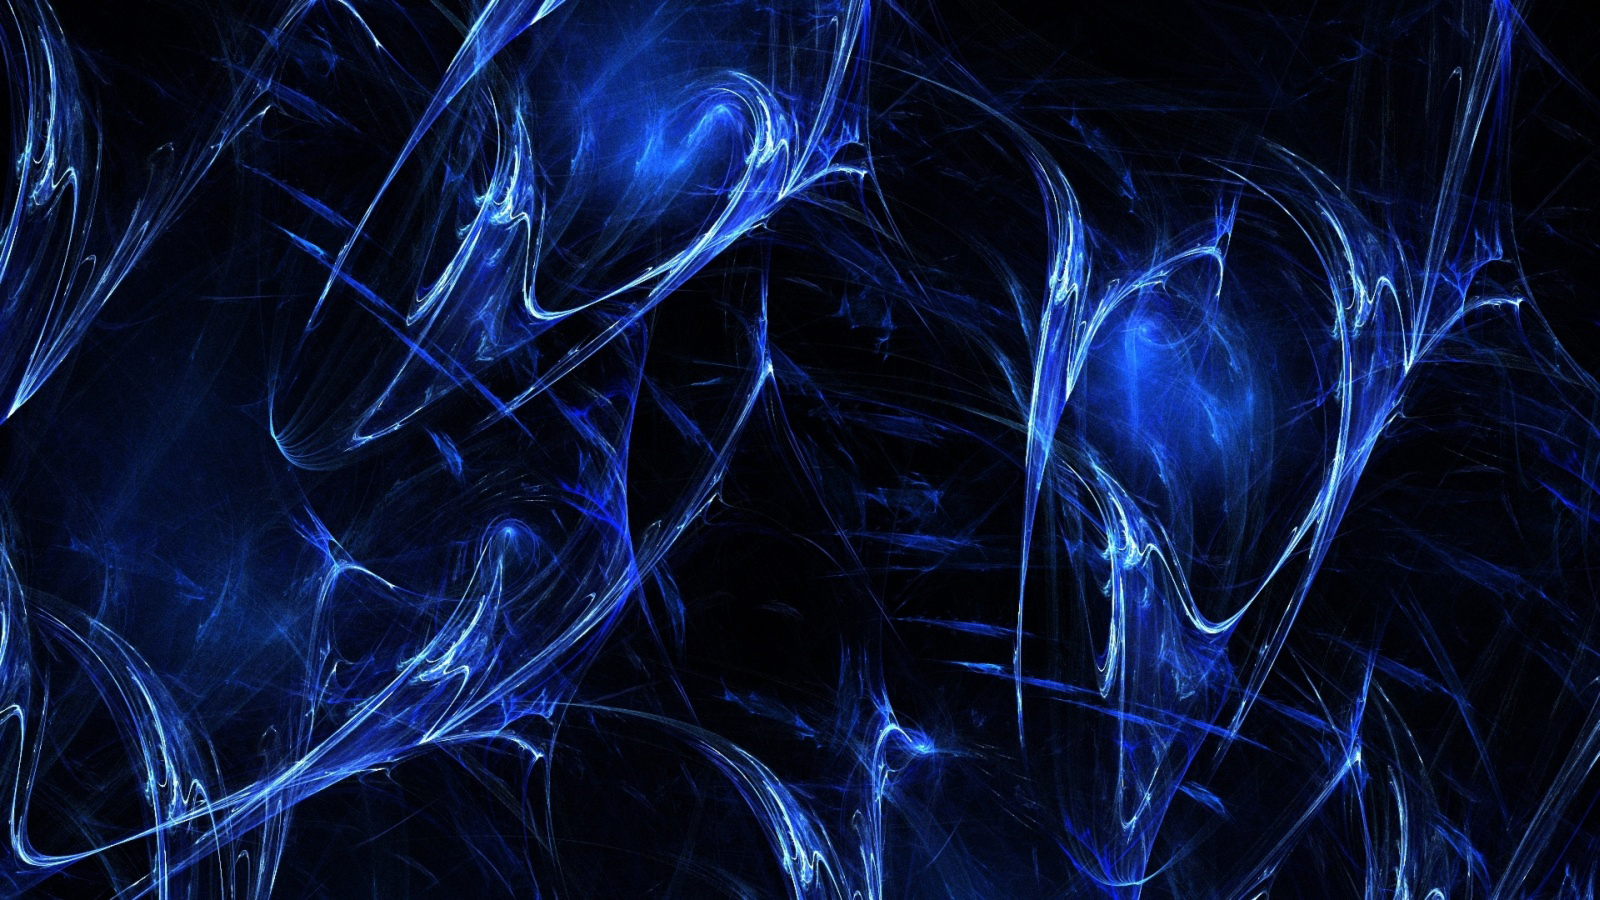 Glossy blue fractals by cednik Glossy blue fractals by cednik